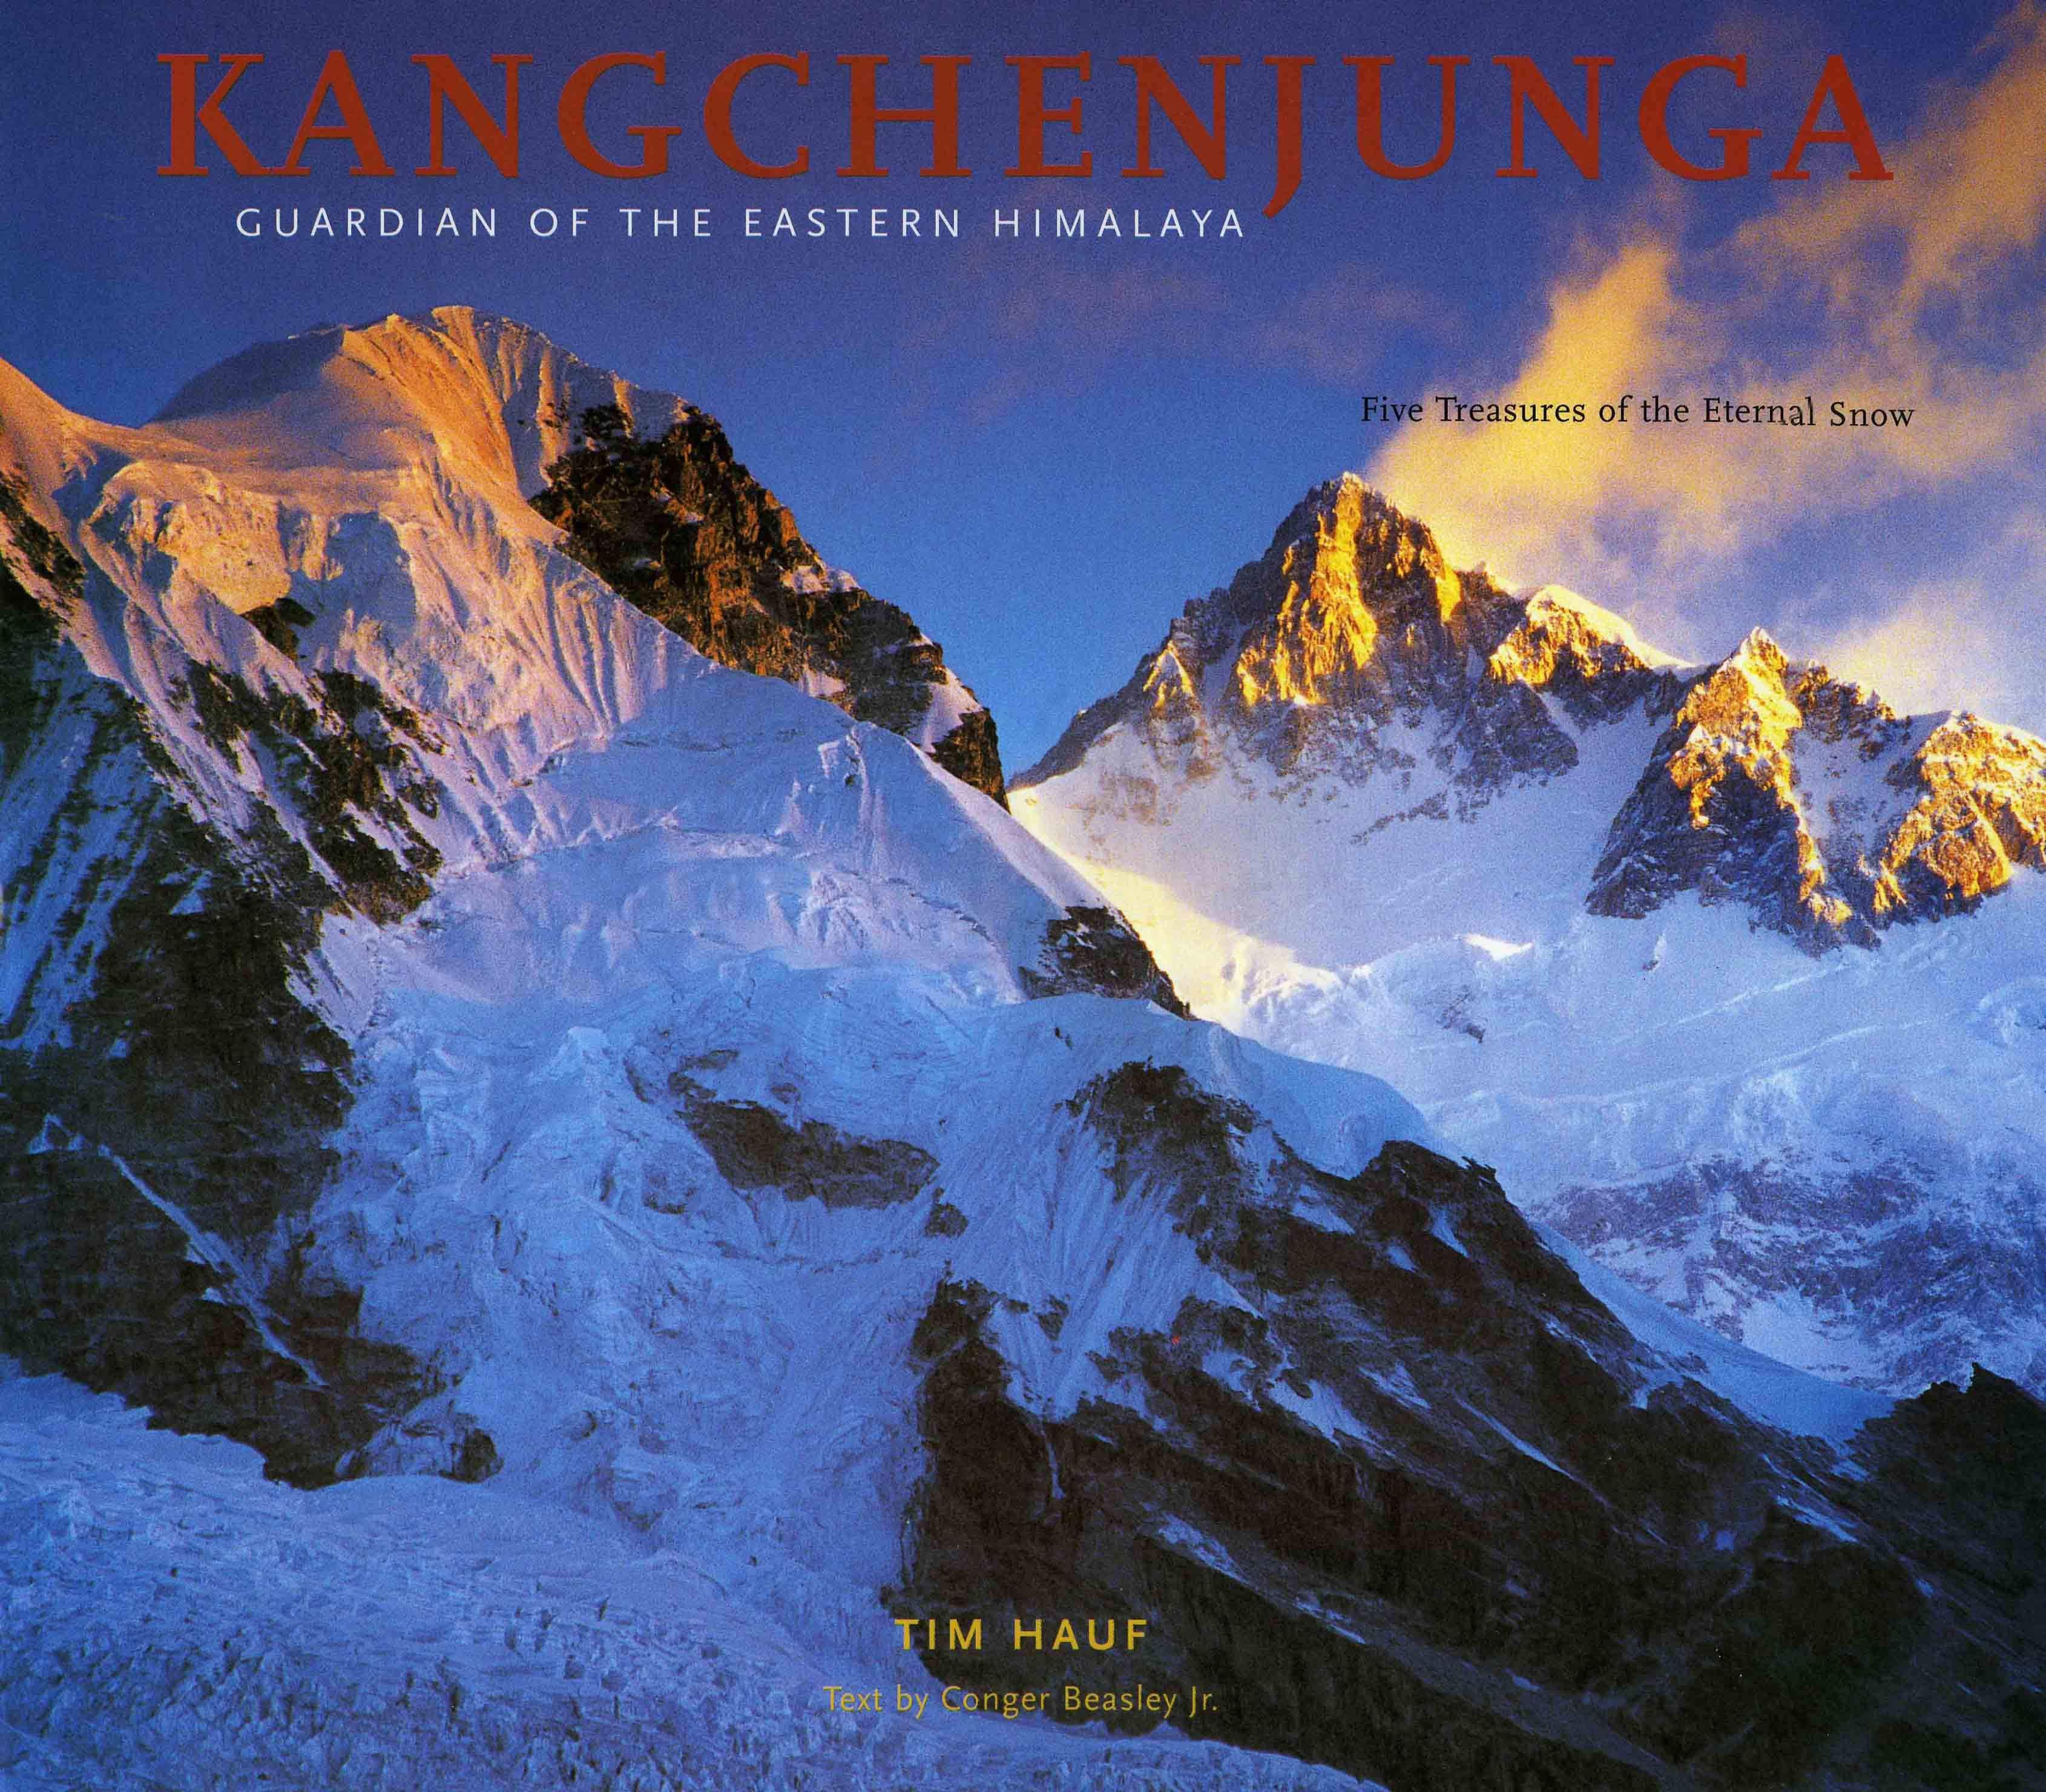 Coffee-table photography book about Kangchenjunga.  Kangchenjunga, in the eastern Himalaya, is the third highest mountain on the planet.